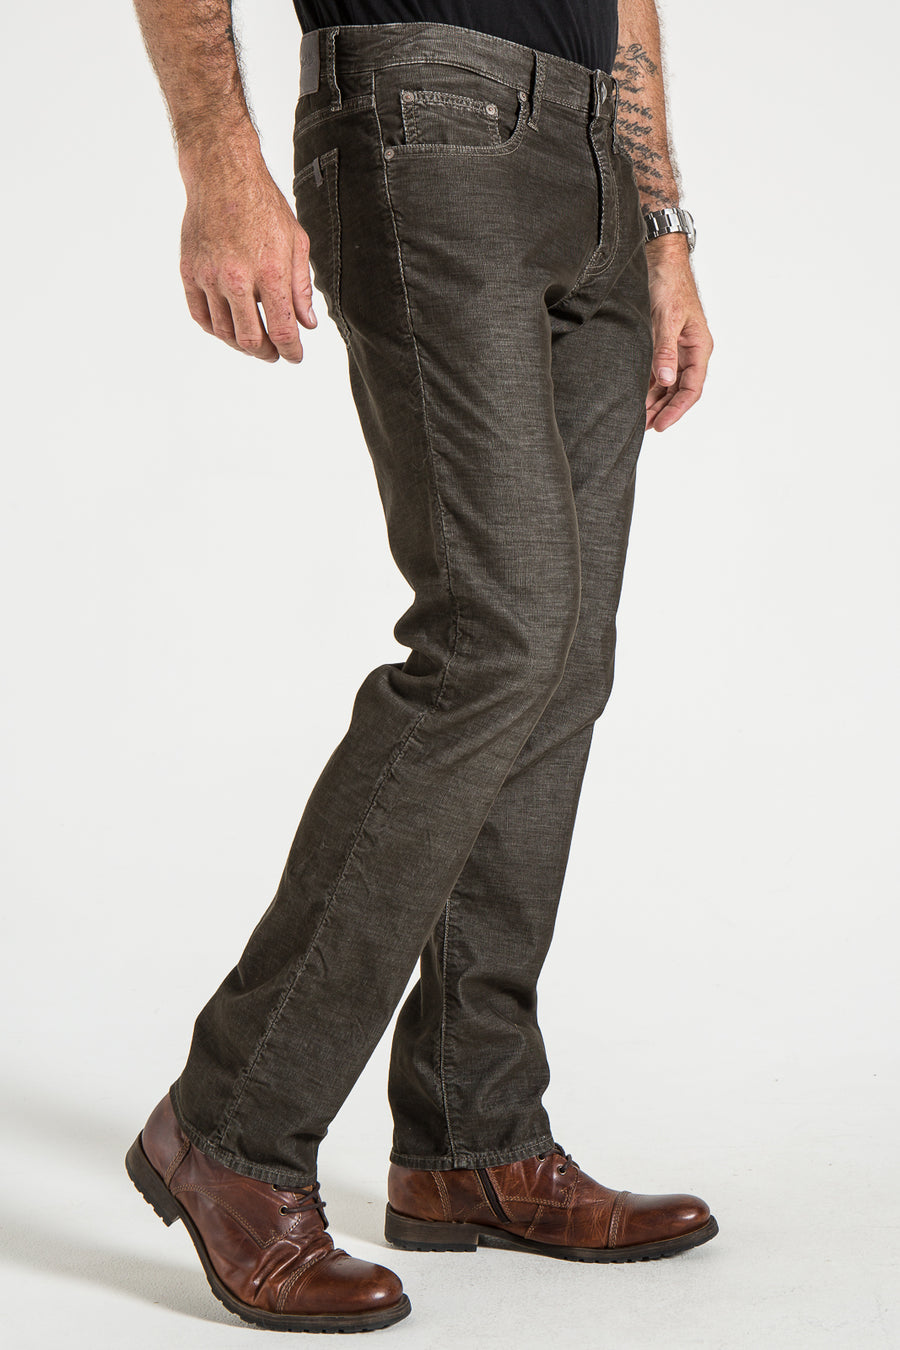 BARFLY SLIM IN BEAR CORDUROY